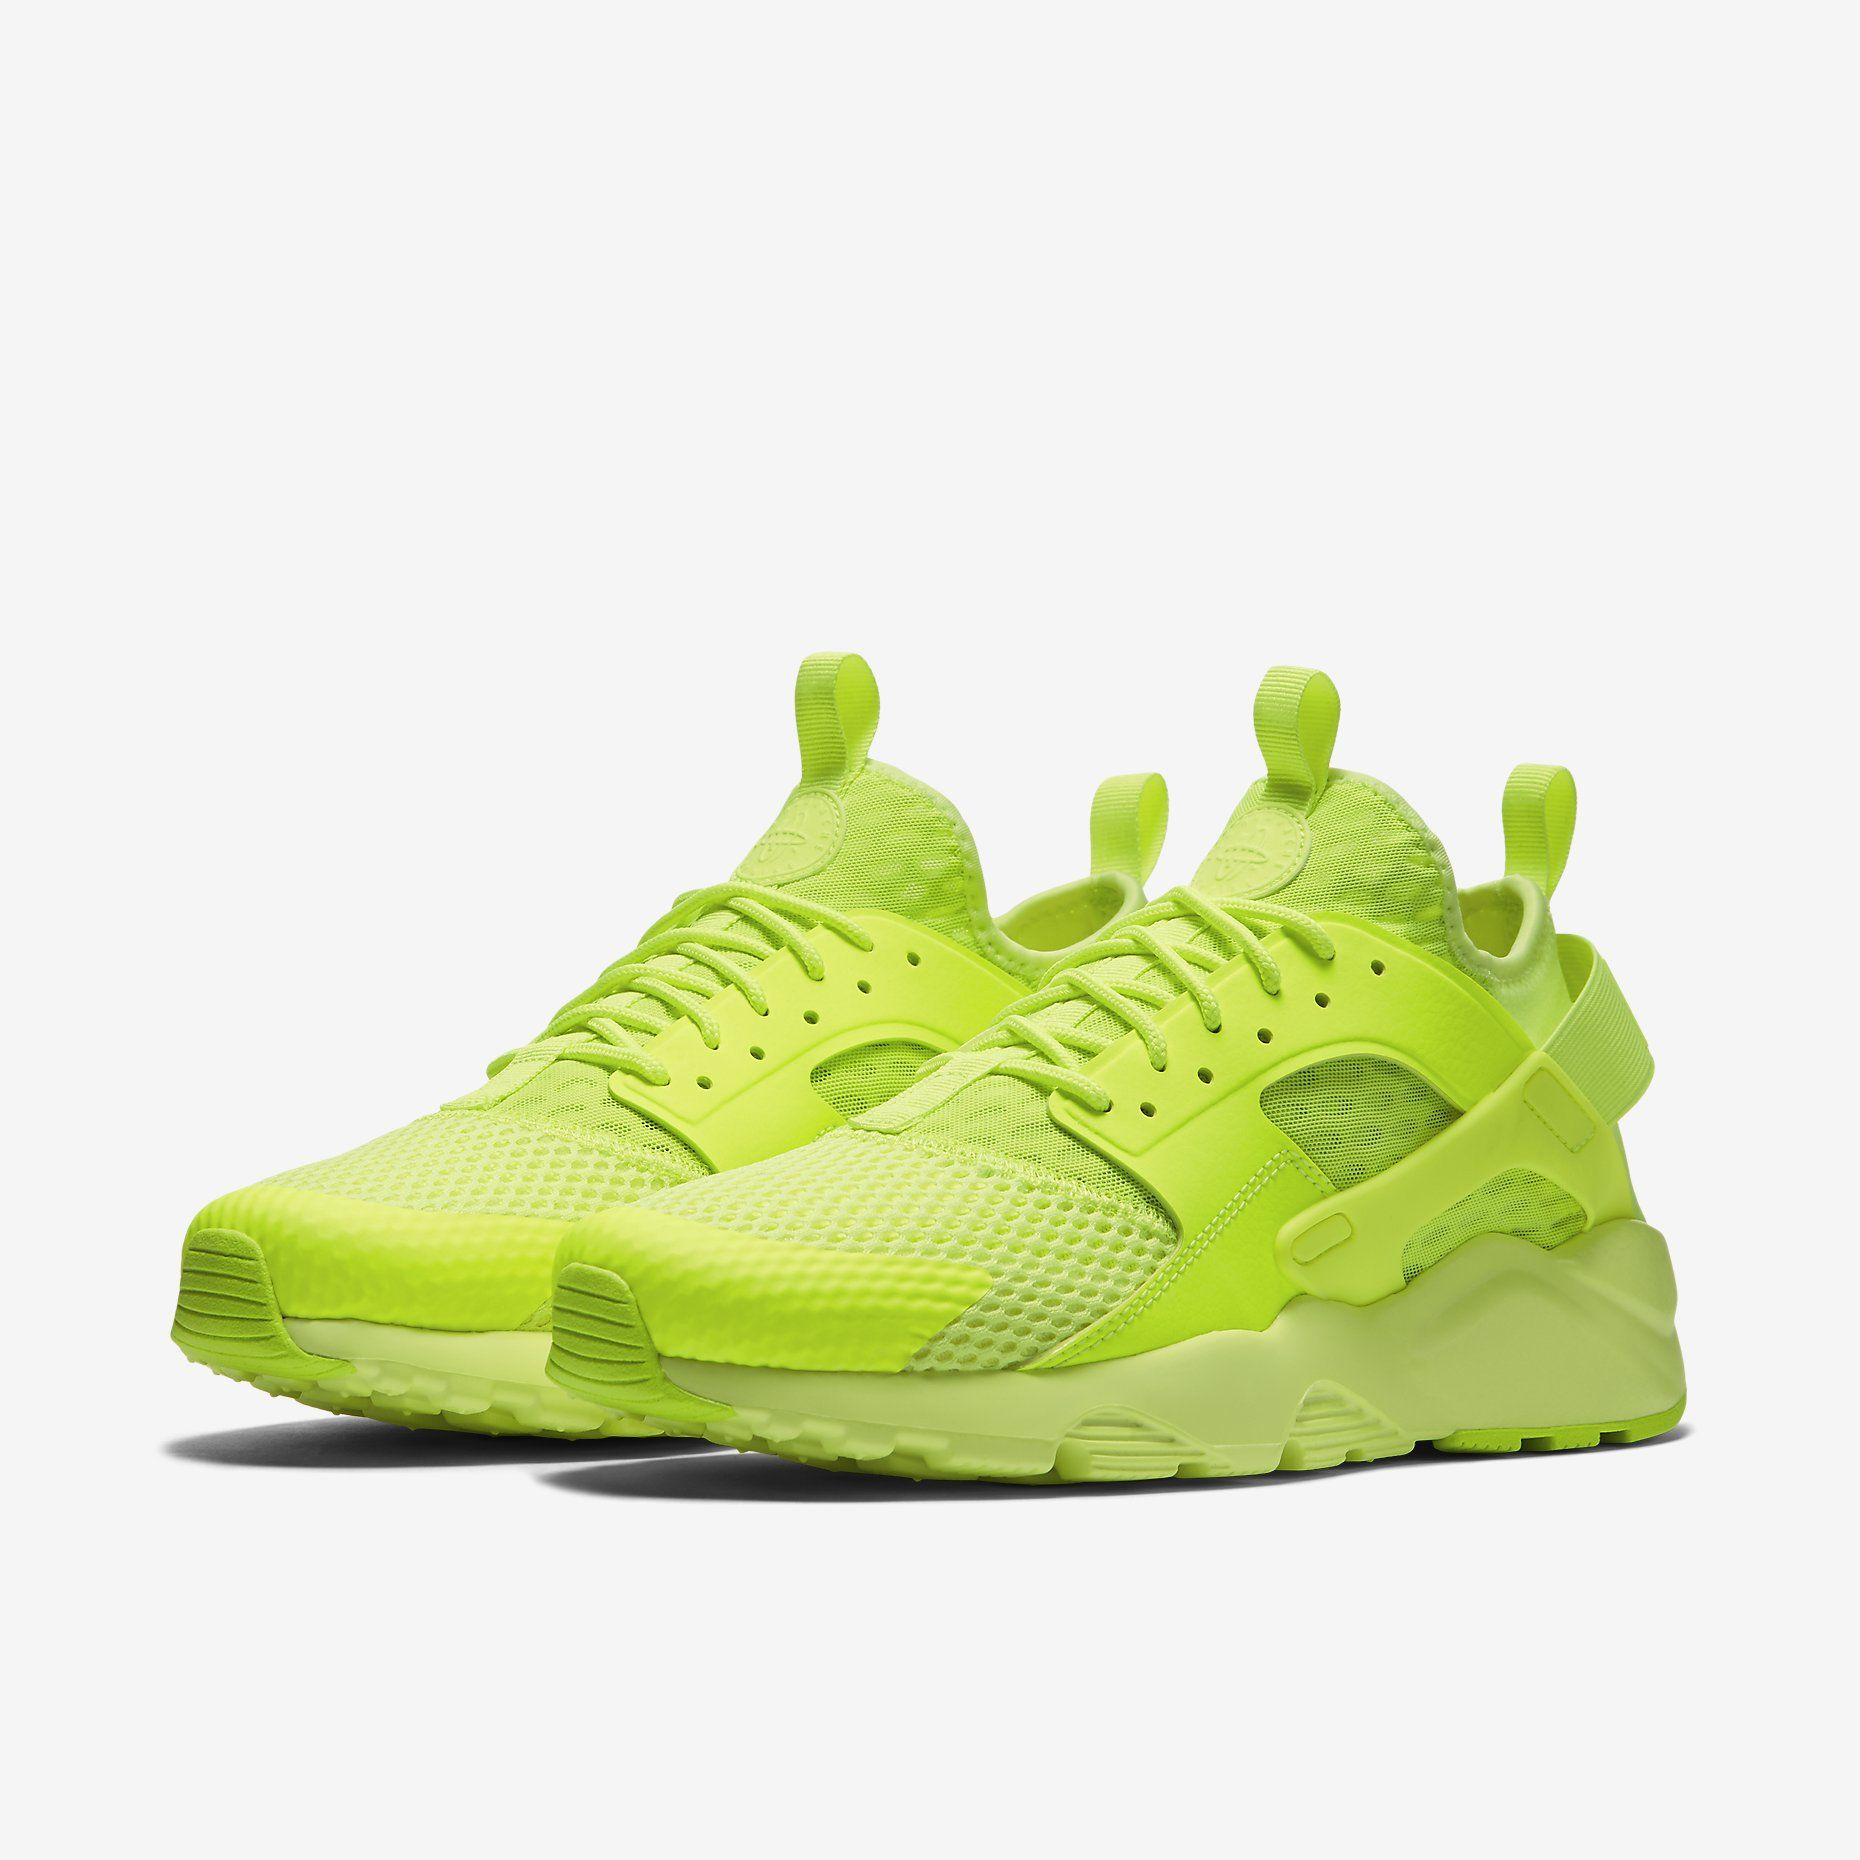 1c07f1eddda Nike Air Huarache Ultra Breathe - Volt